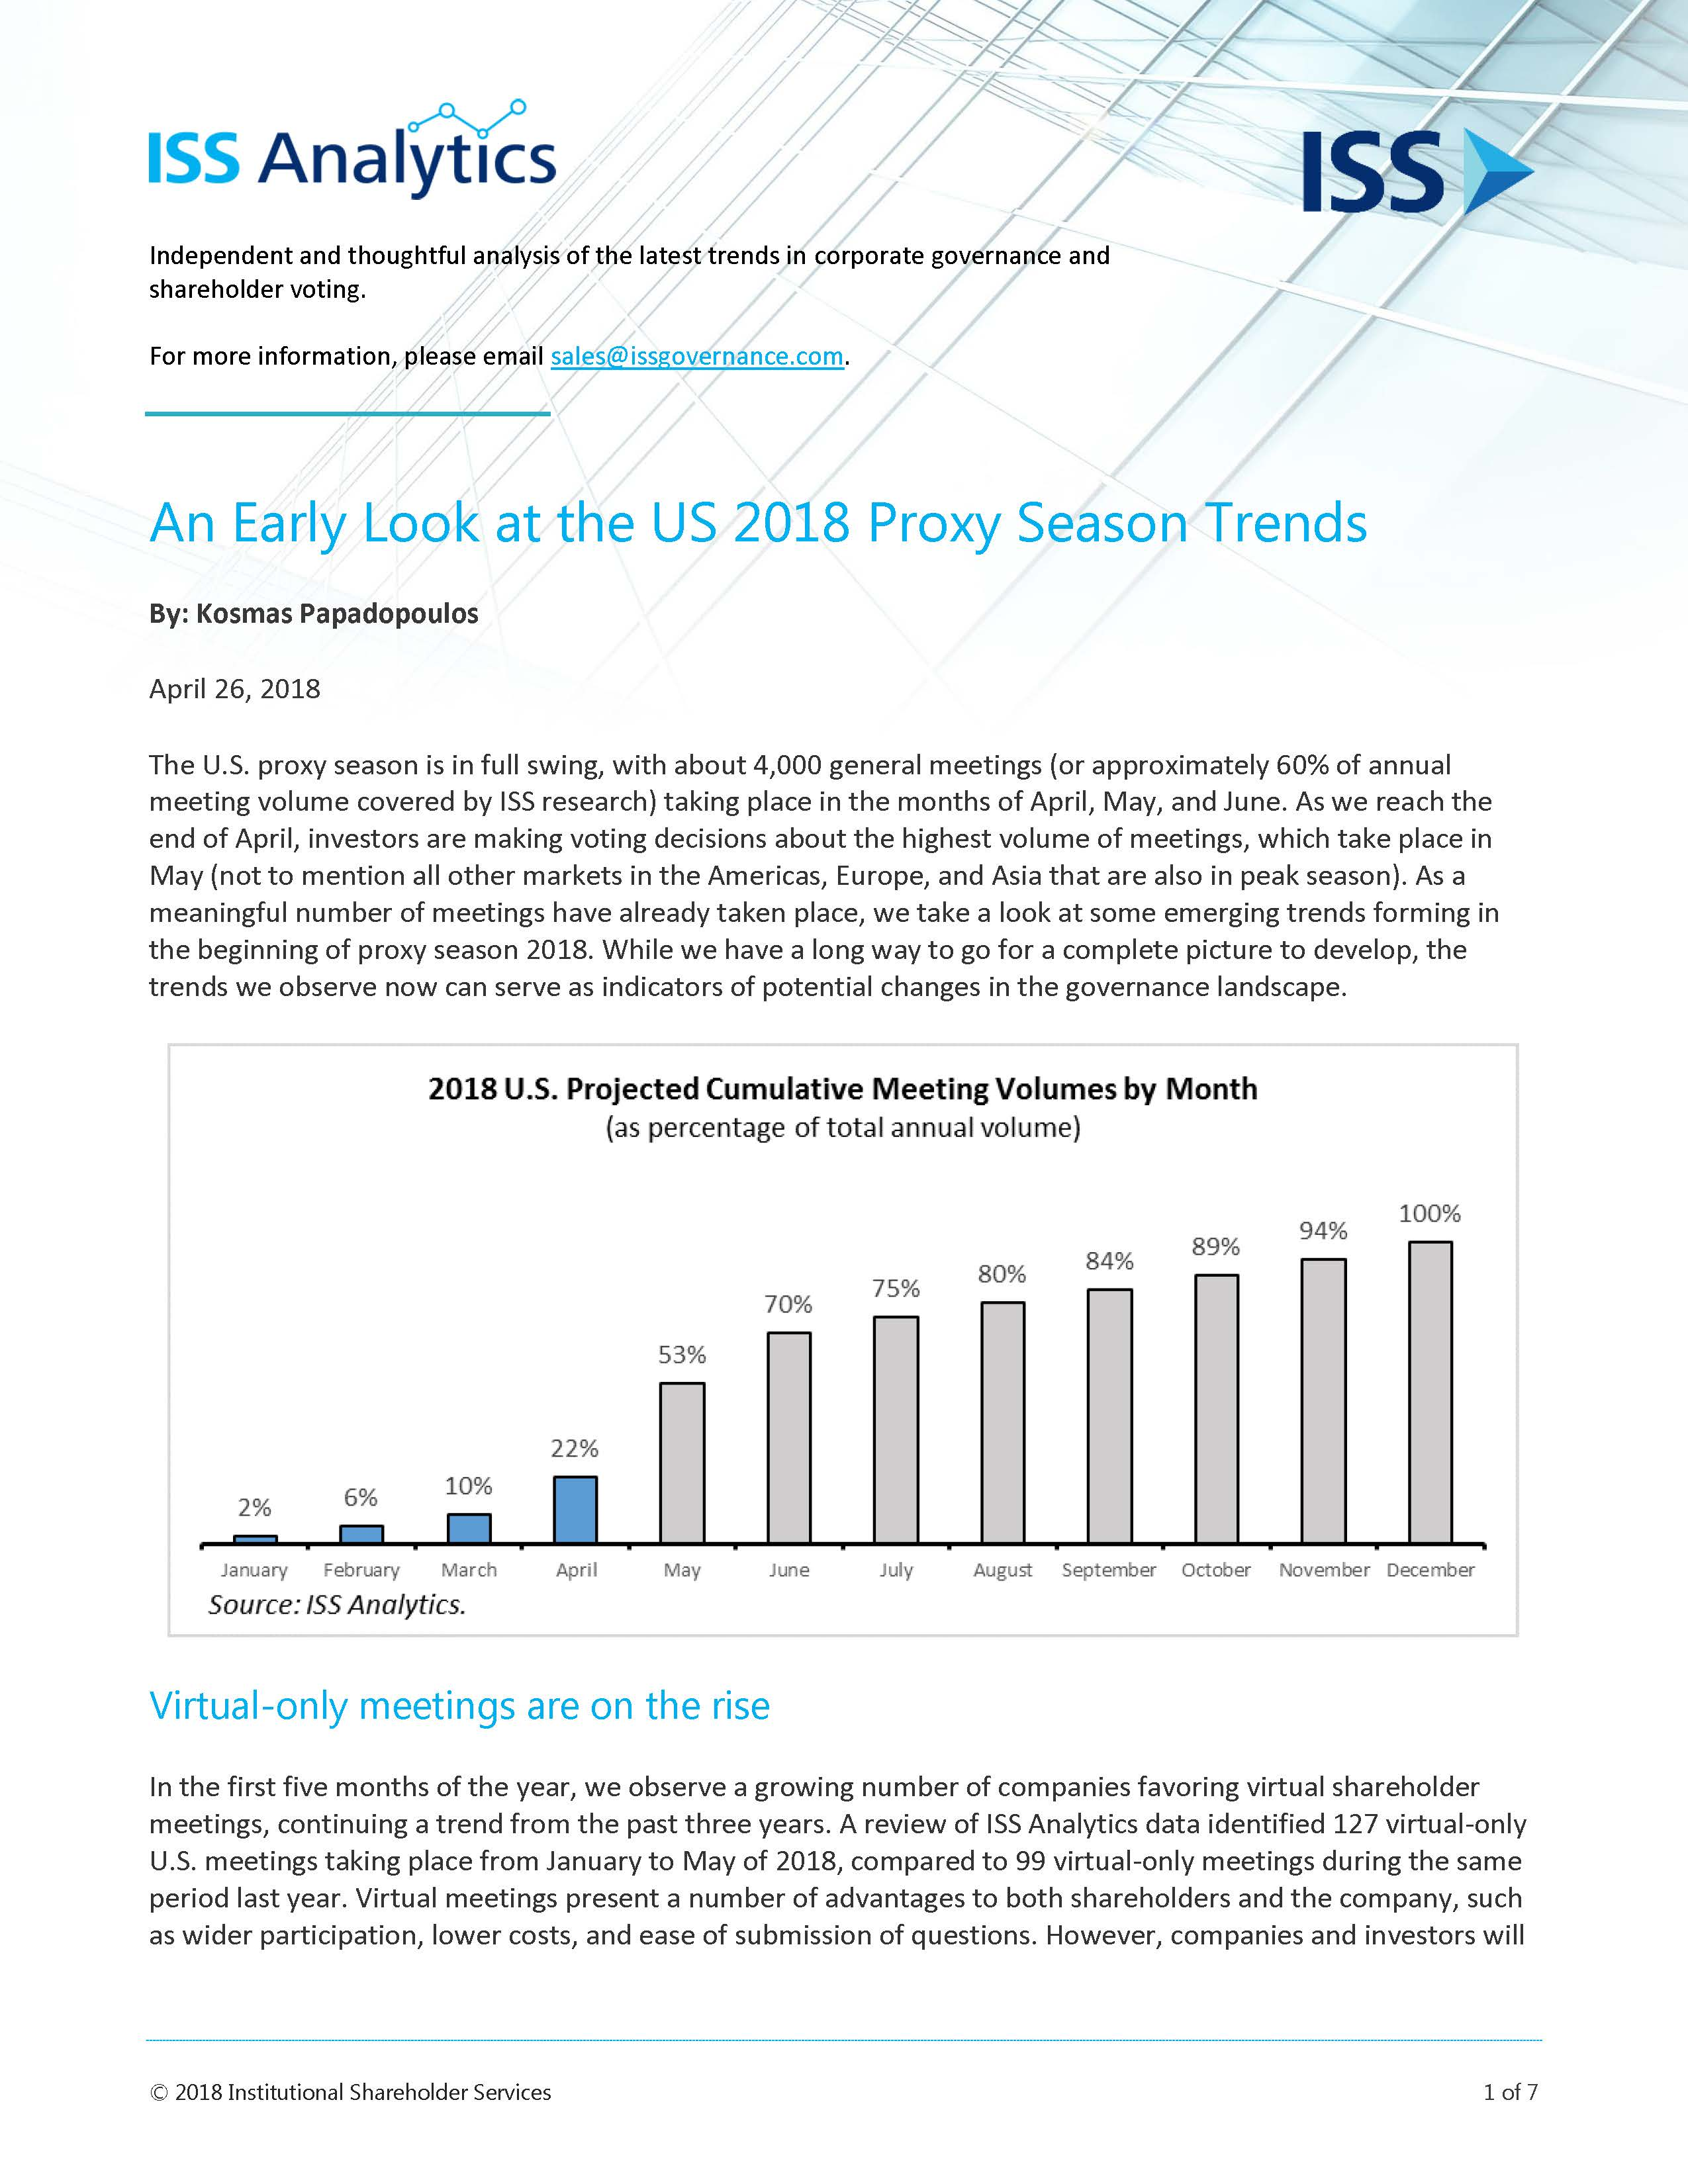 early-look-us-proxy-season-trends